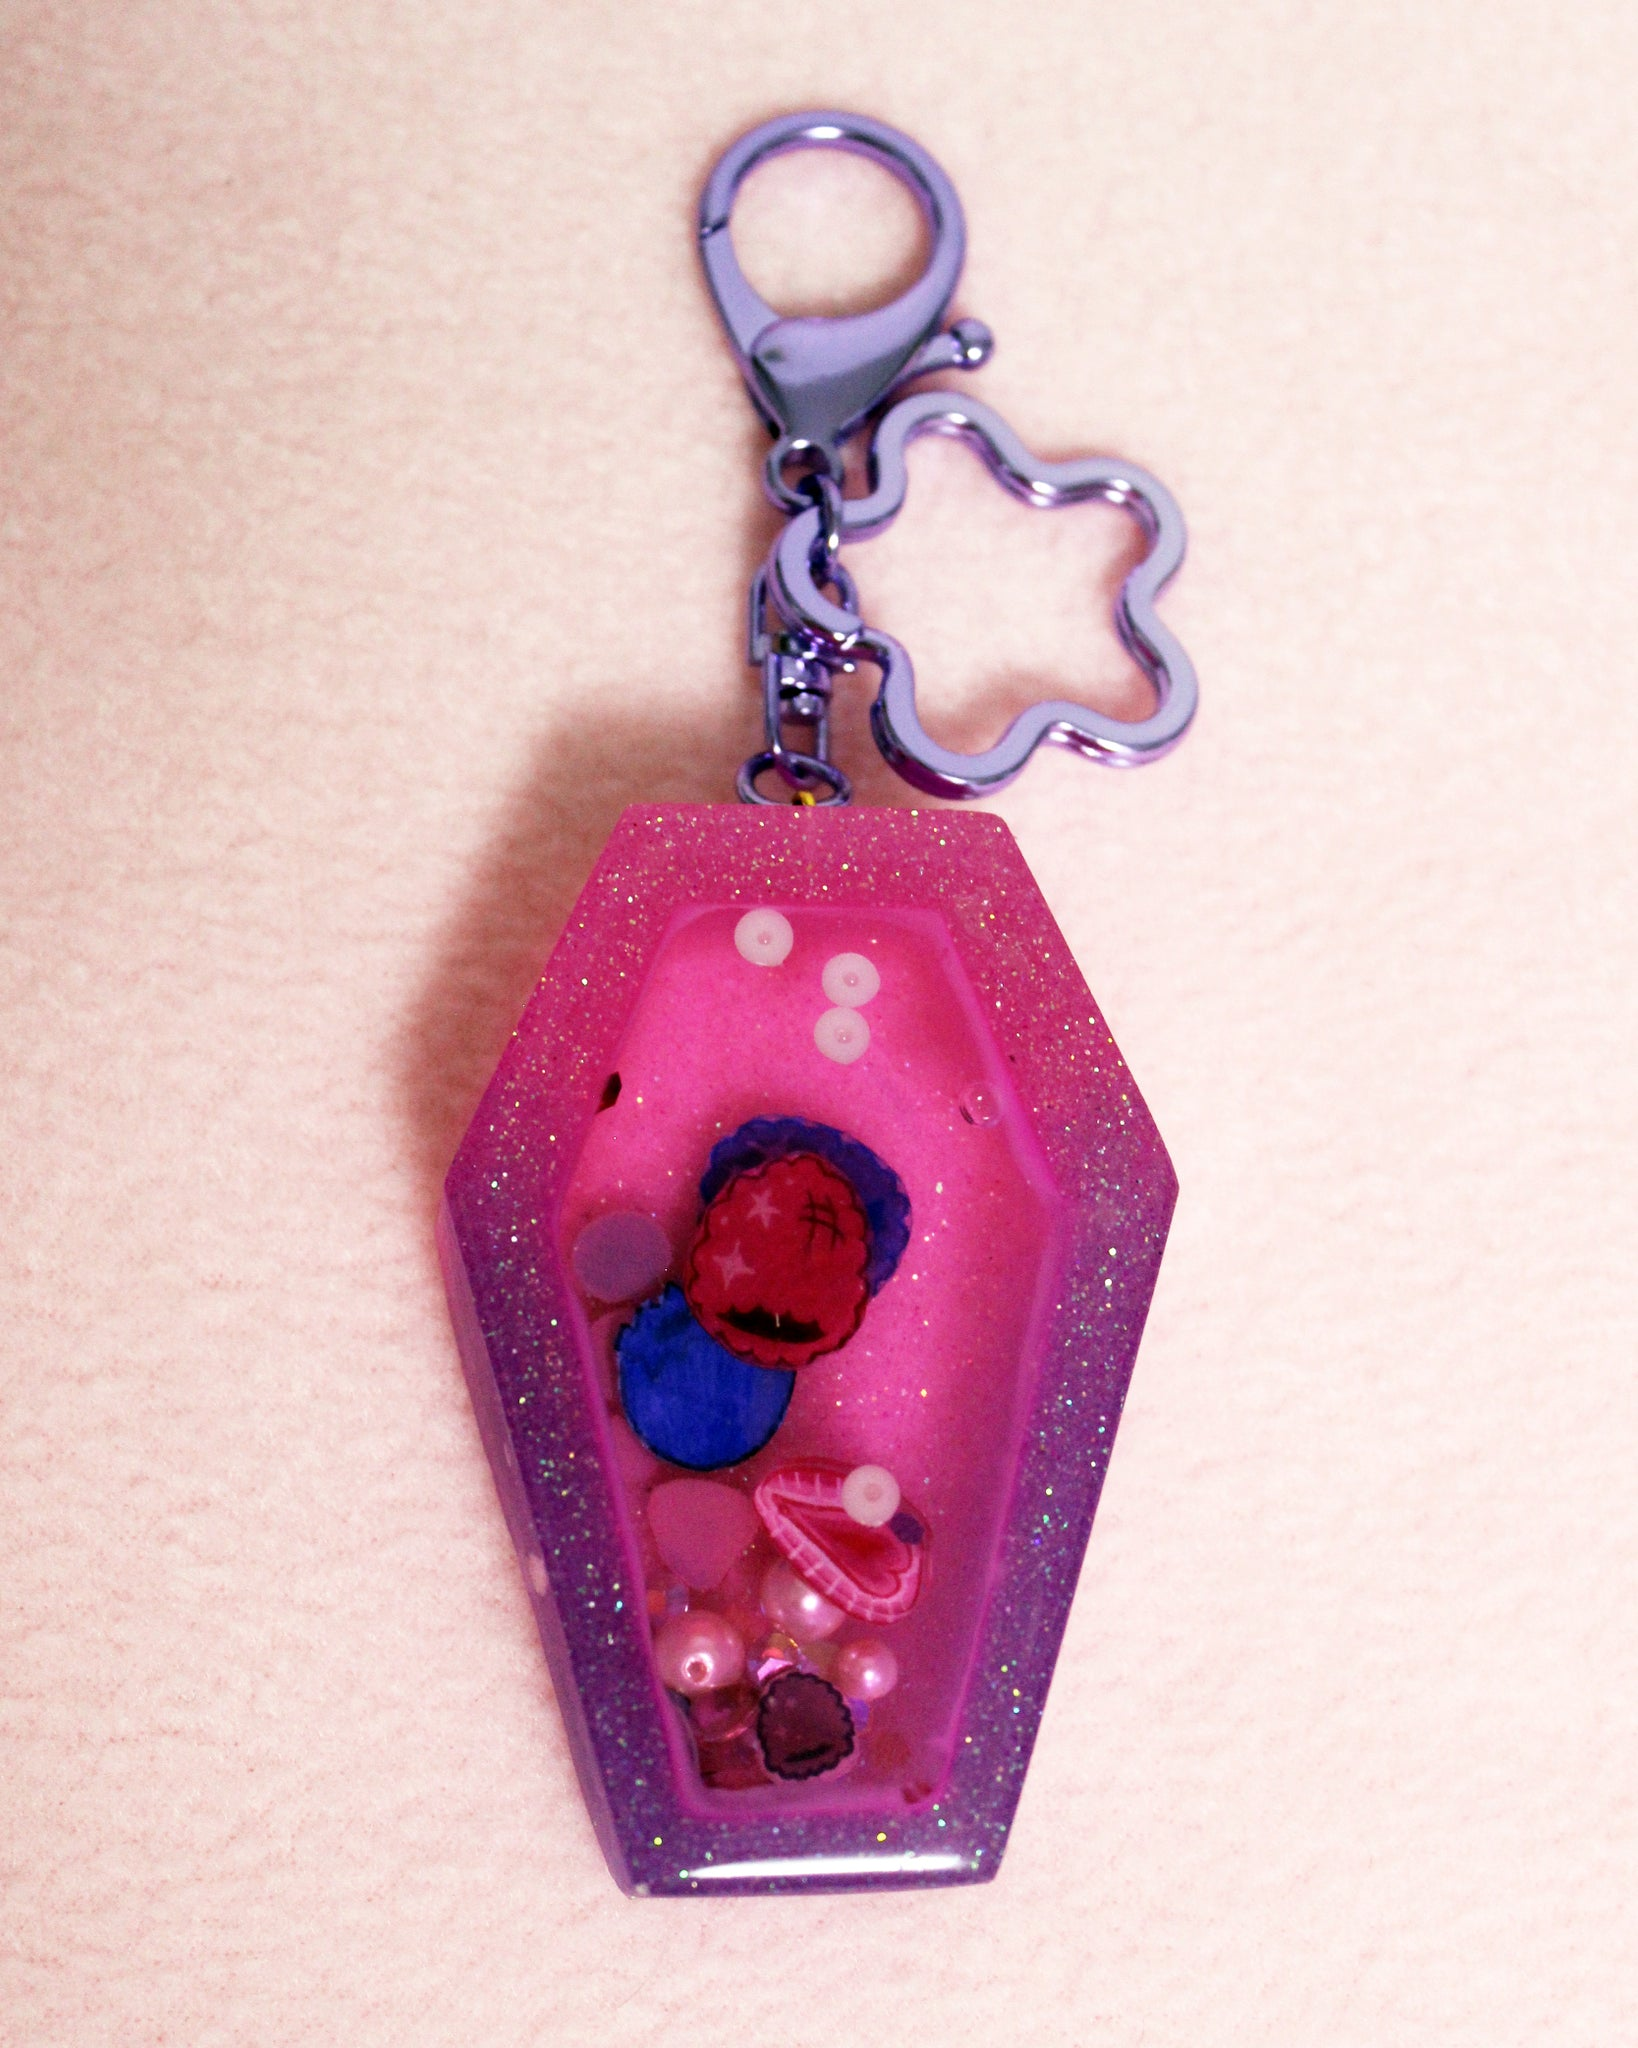 SECONDS Mixed Berry Liquid Filled Coffin Shaped Shaker Keychain